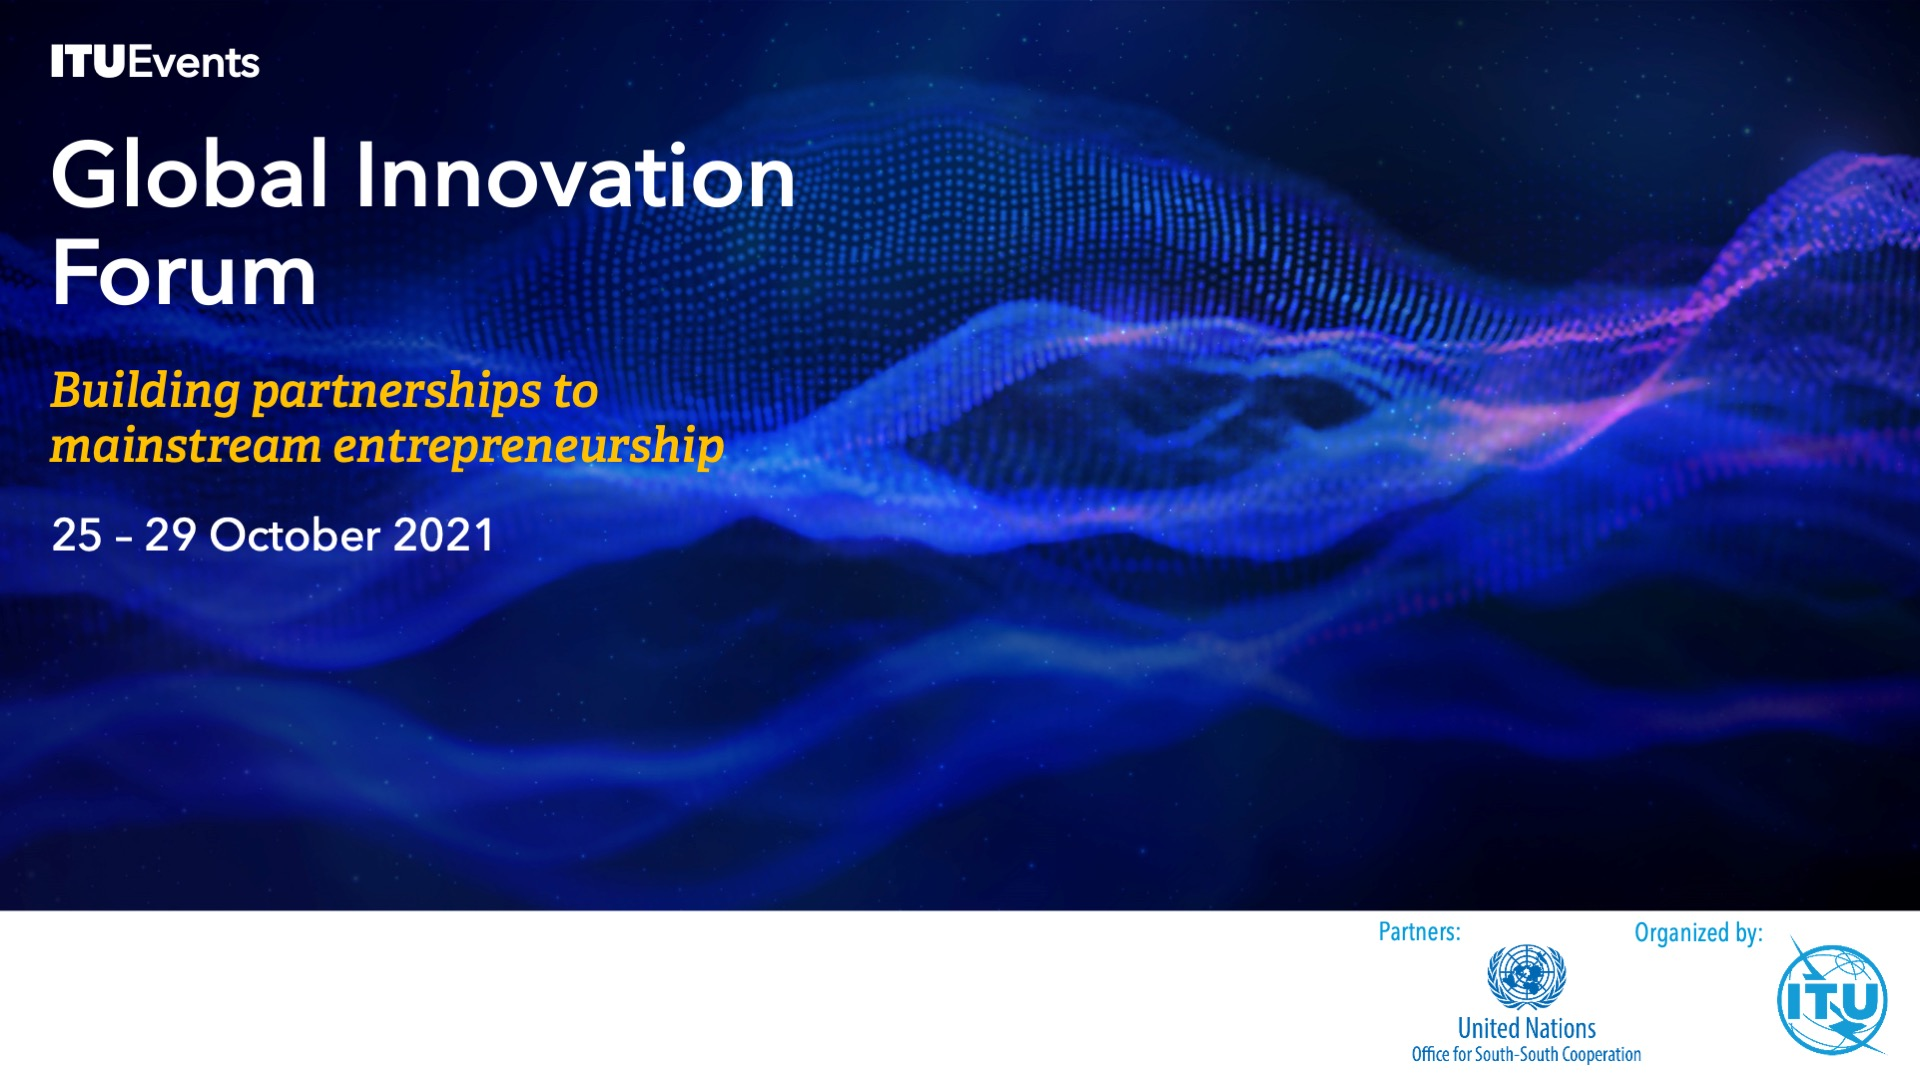 Register now to attend The ITU Global Innovation Forum 2021